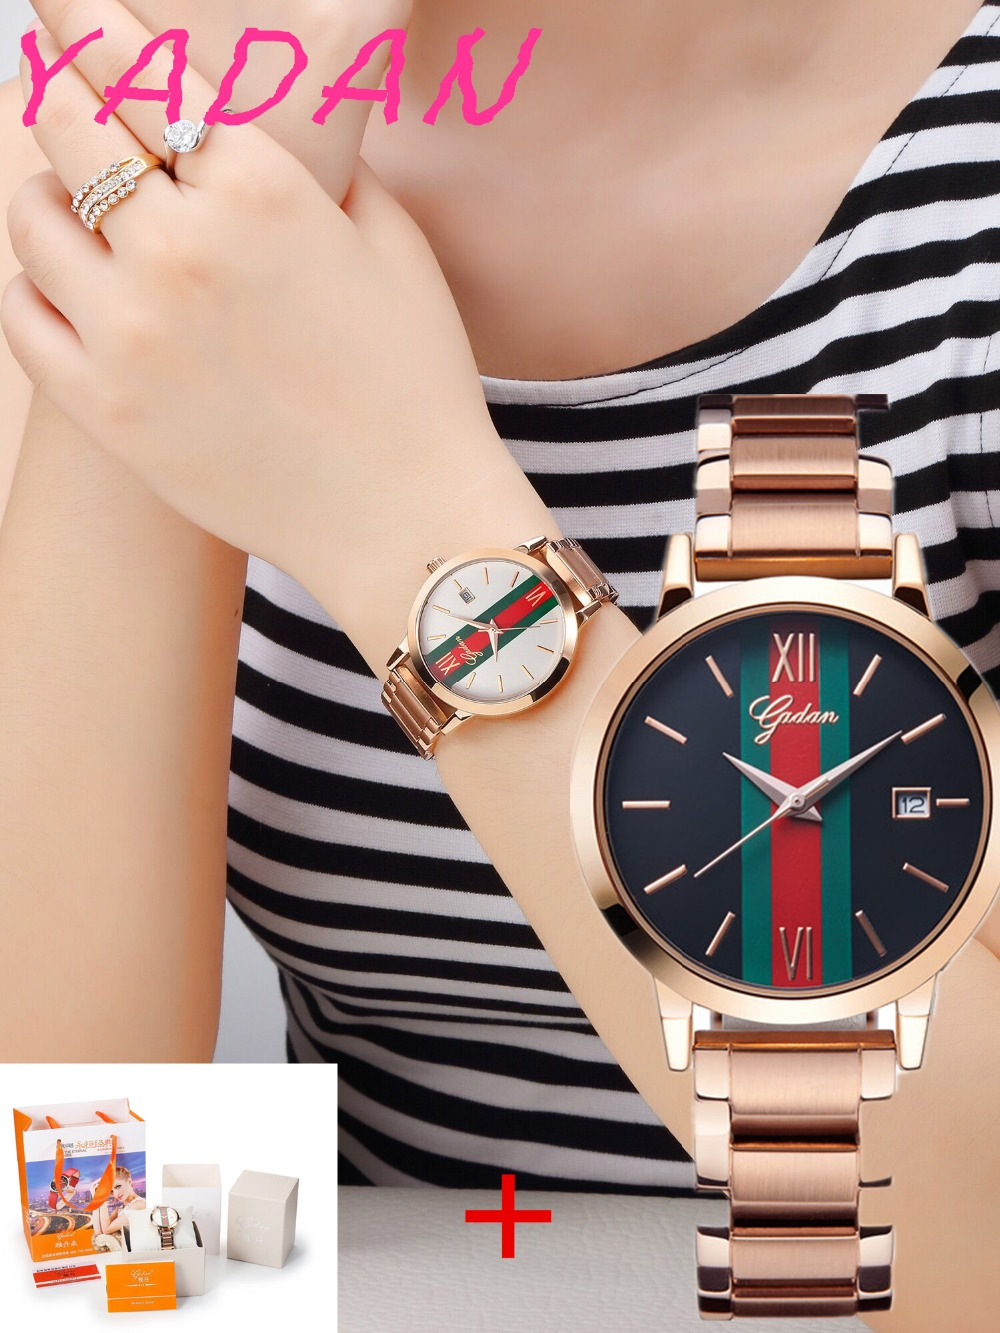 New 2017 Top Brand Waterproof Women Sports Watches Women Casual Quartz Watch Stainless Steel Wrist Watch Relogio Feminino Clock new famous dqg brand quartz watch women sports gold stainless steel watches relogio feminino clock casual wristwatches hot sale